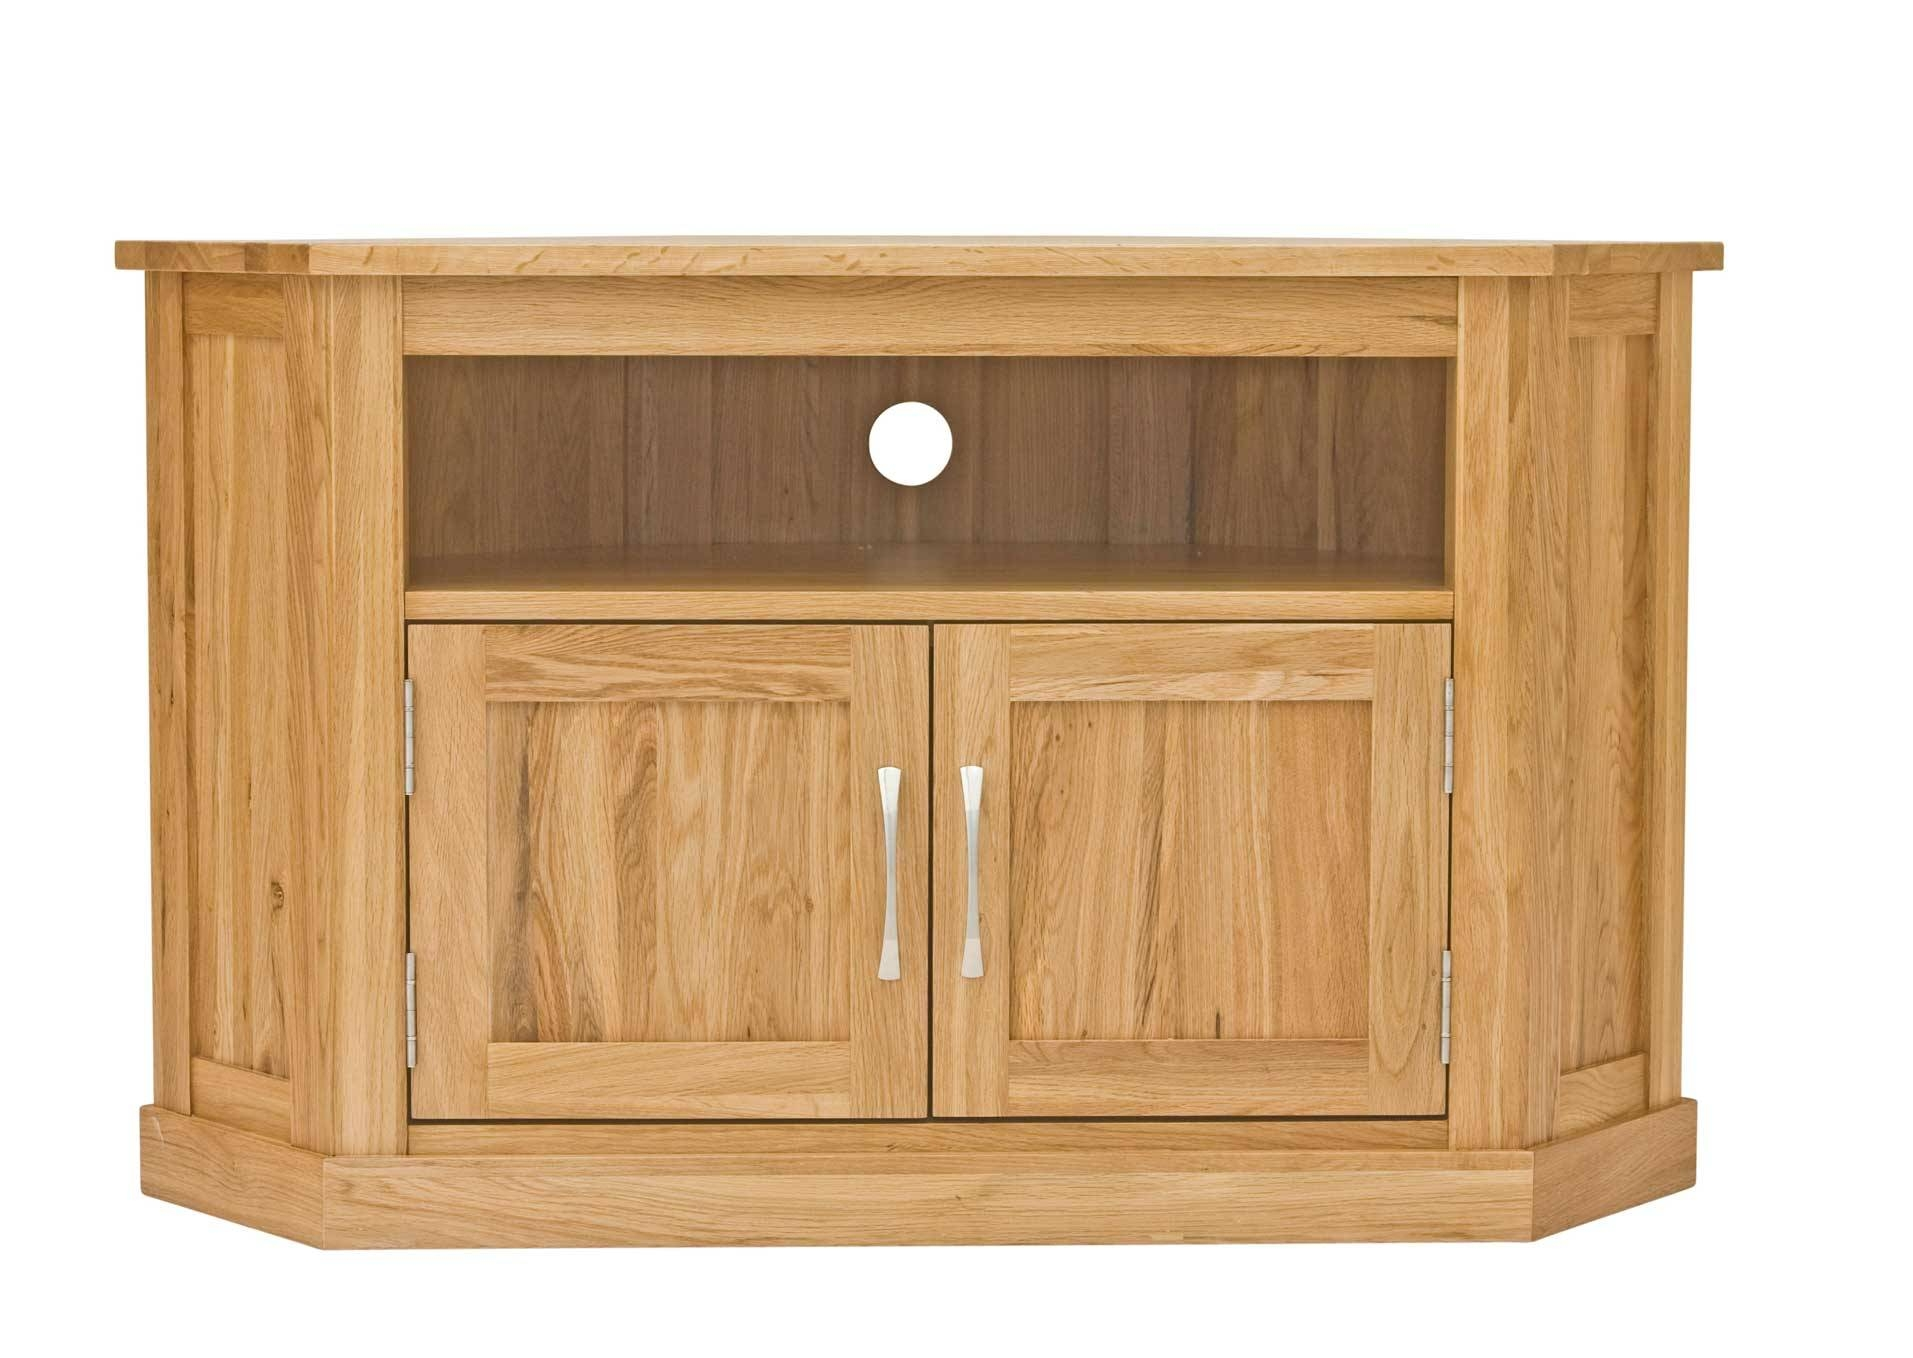 Classic Oak Corner Television Cabinet | Hampshire Furniture pertaining to Small Oak Corner Tv Stands (Image 1 of 15)